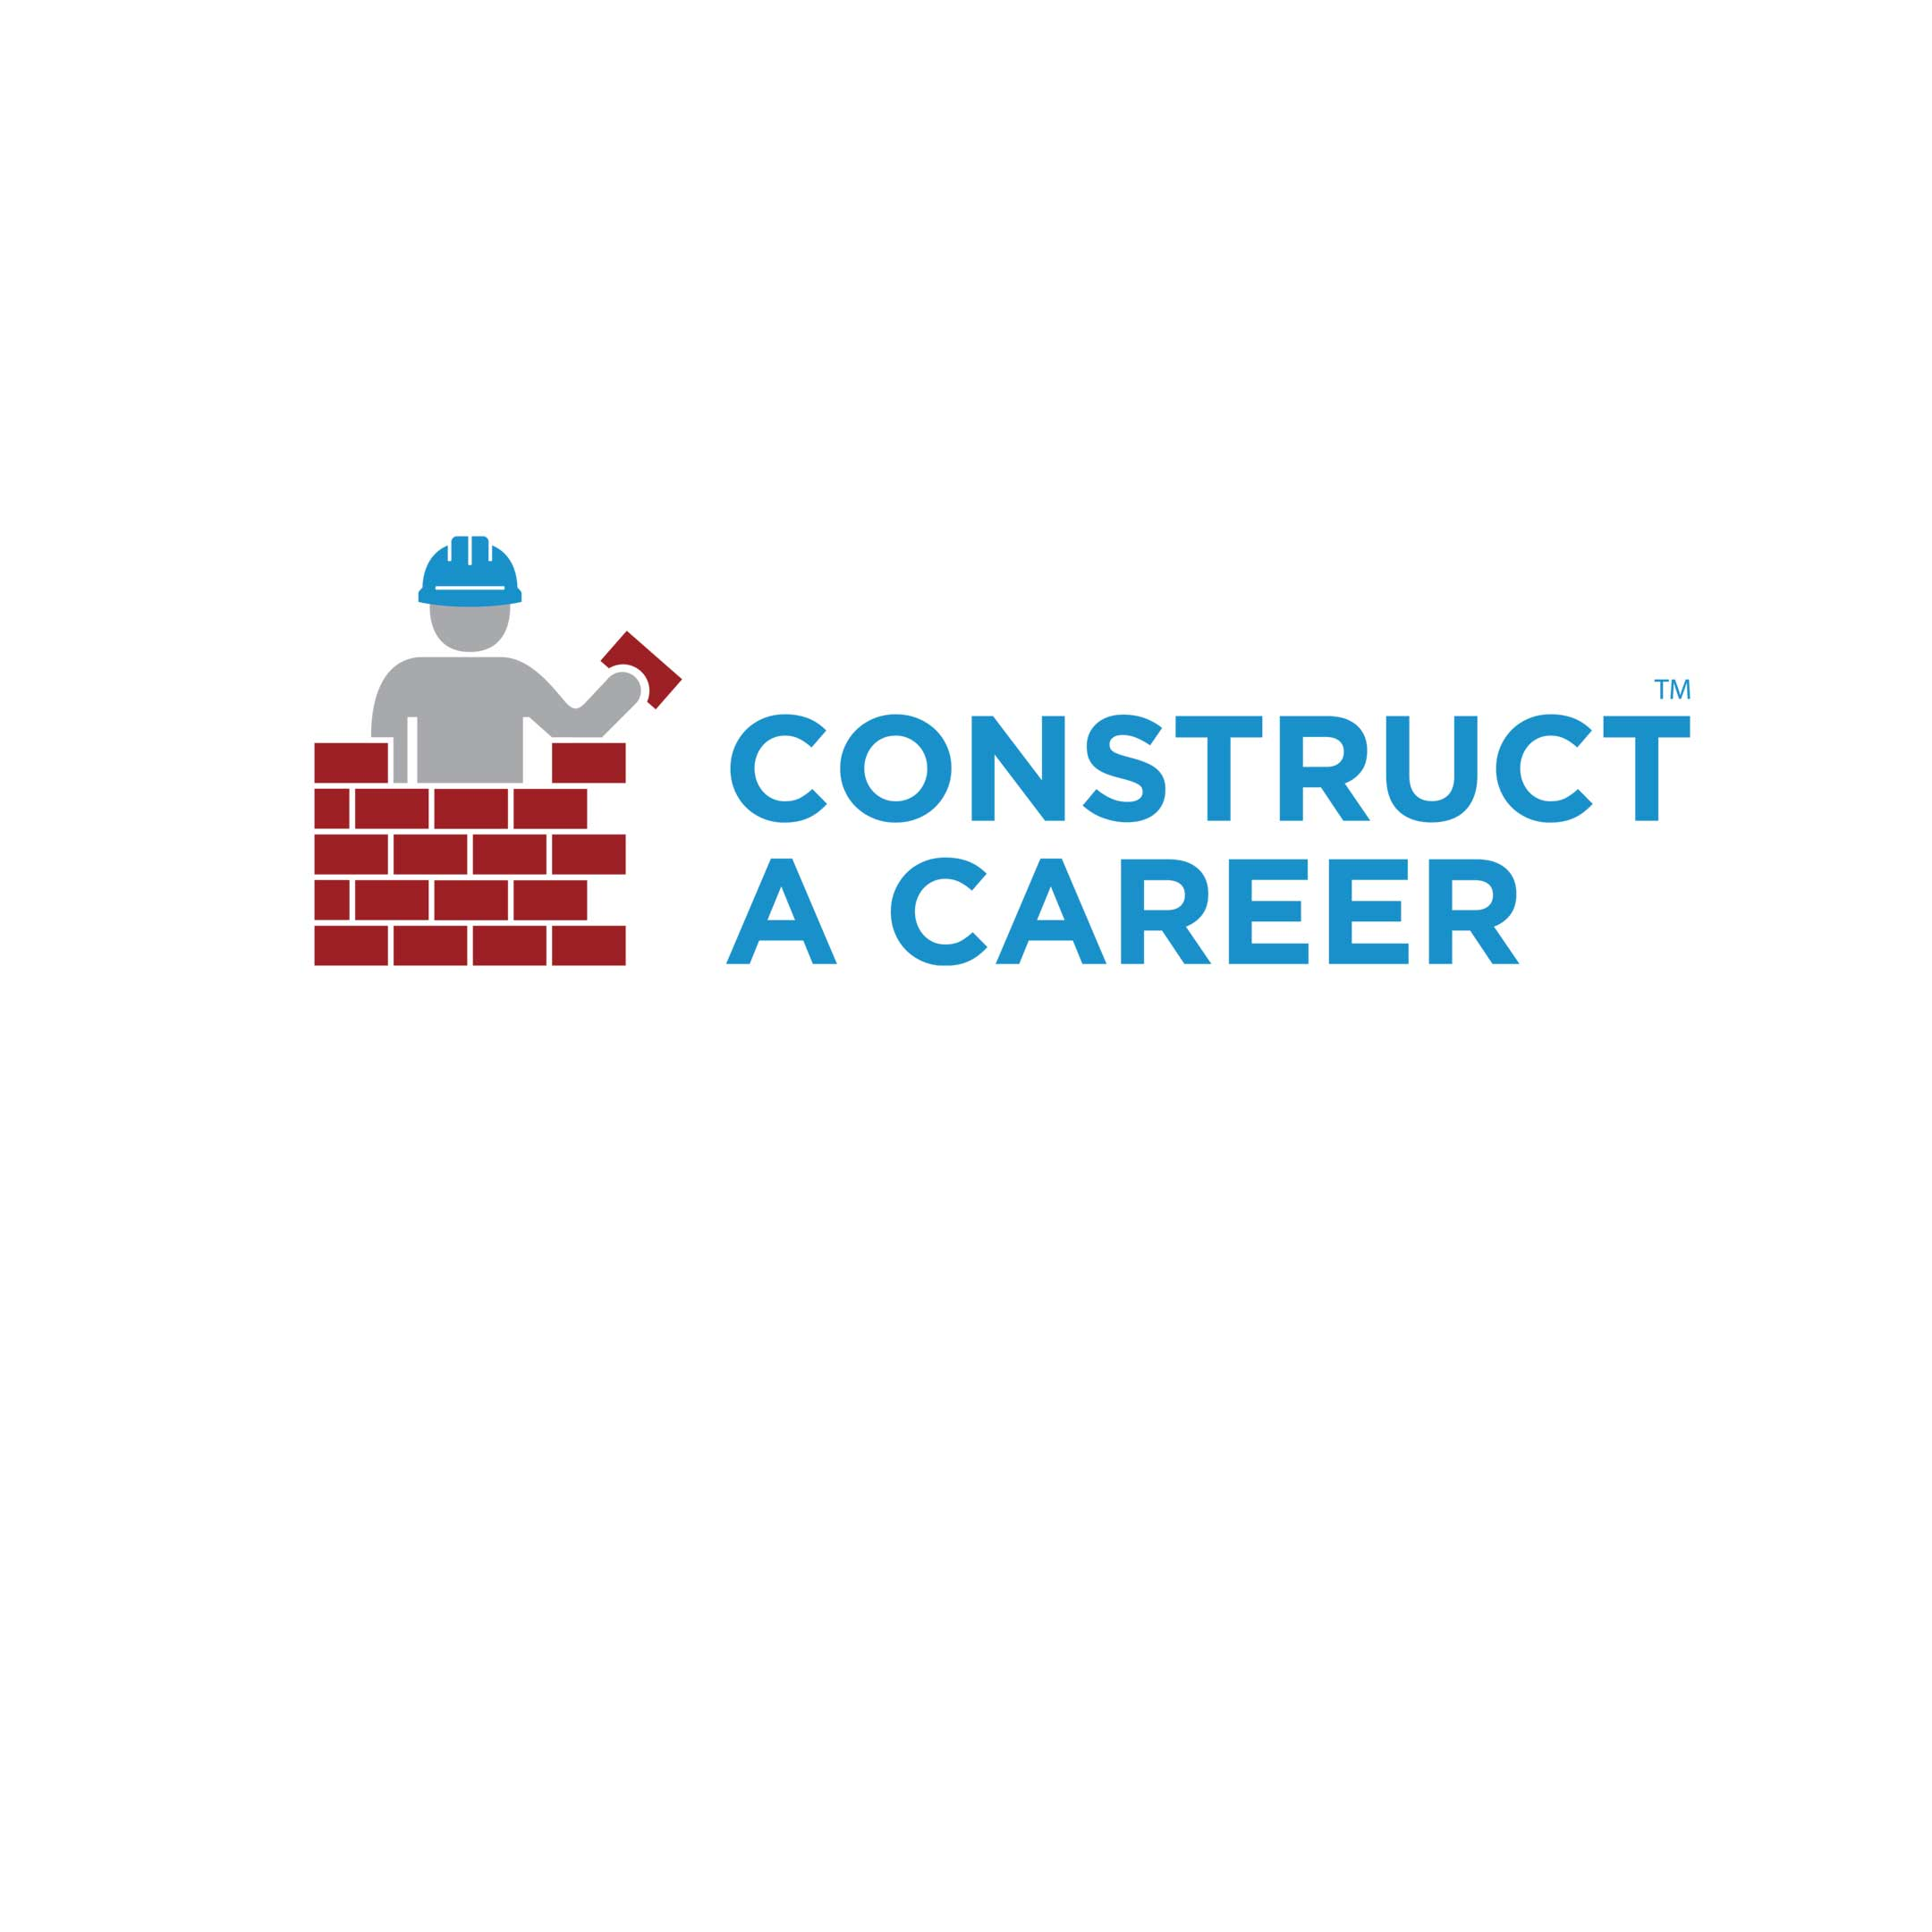 Forming career opportunities in construction